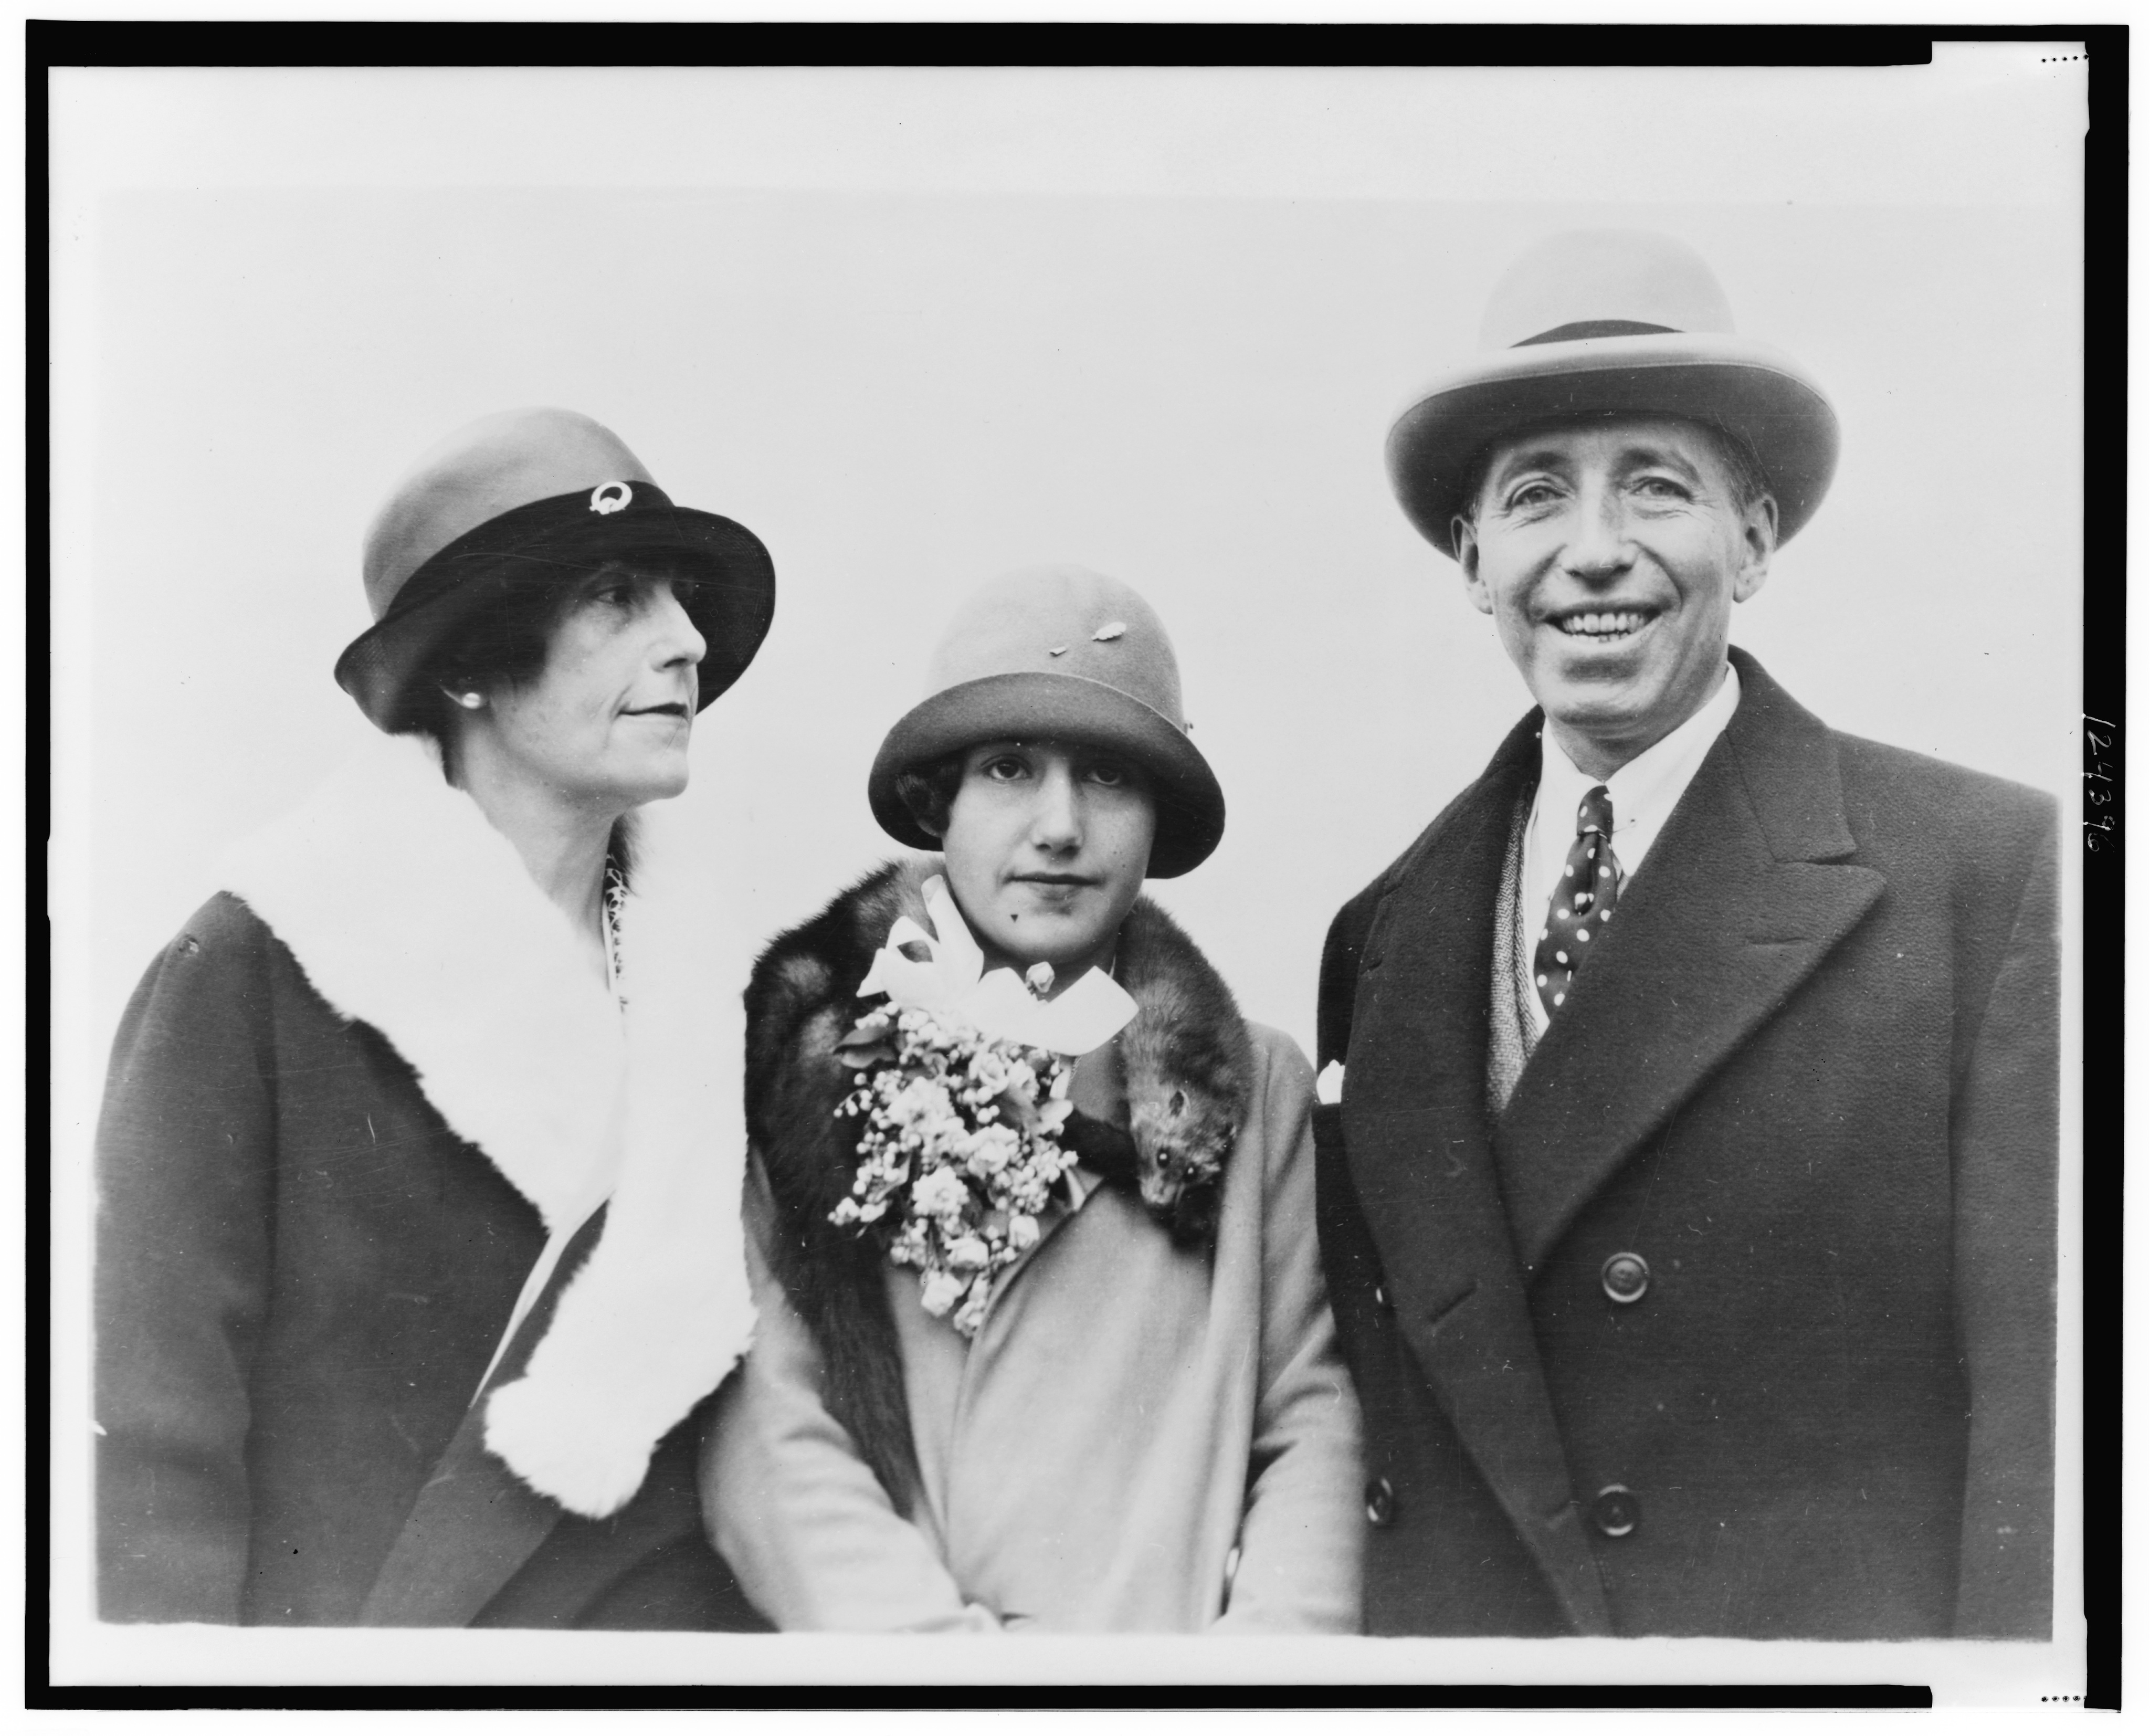 Pierre Cartier, wife and daughter, 1926, Library of Congress.